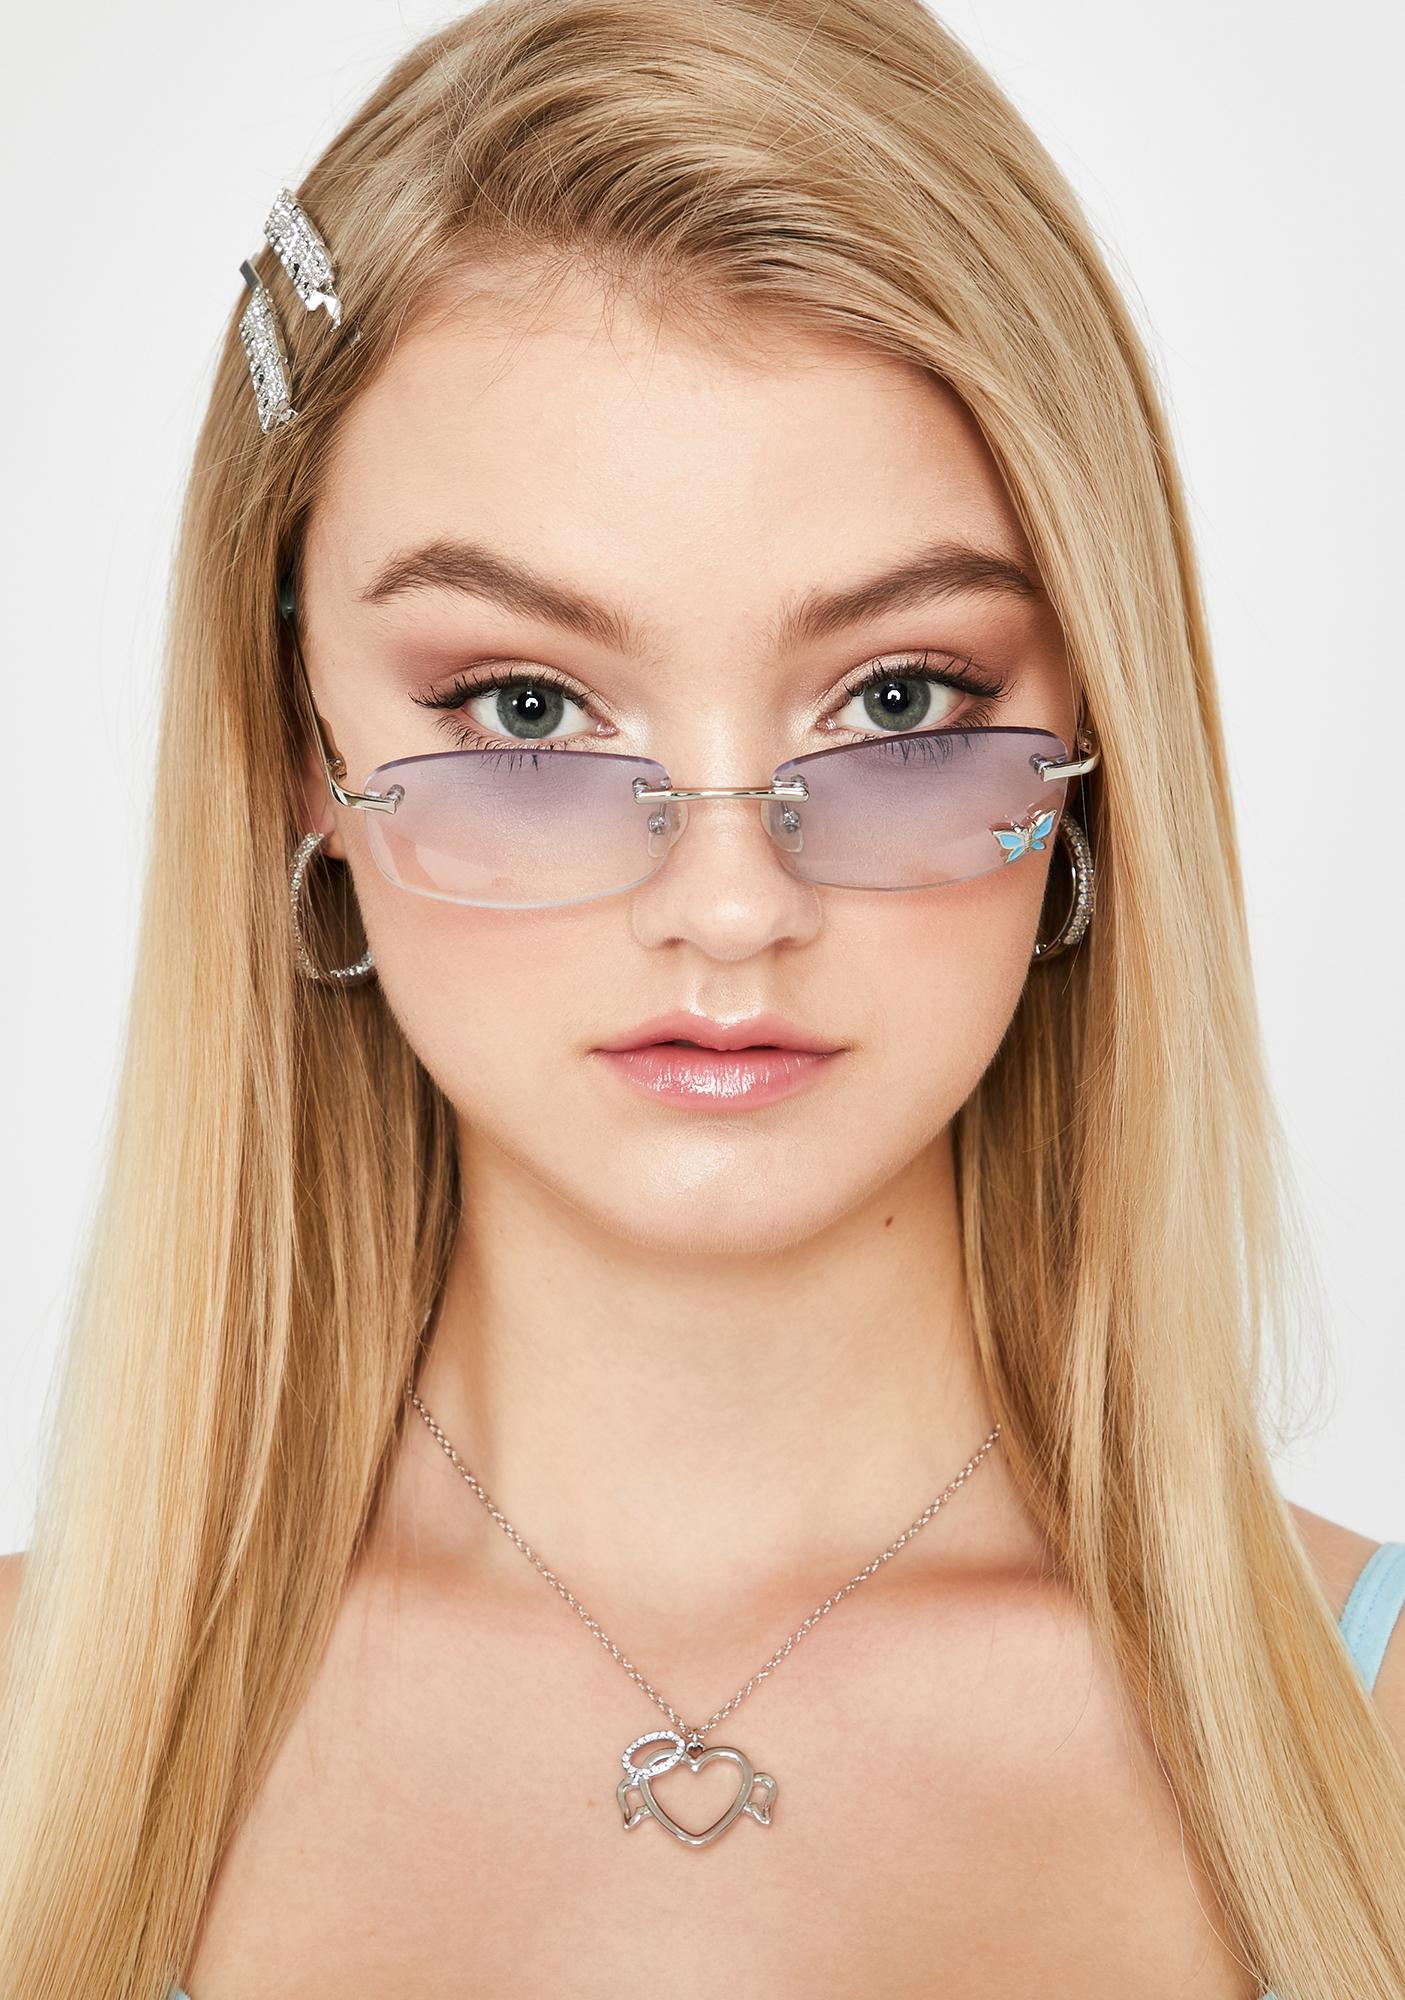 Replay Vintage Sunglasses Sky Stay Charmed Butterfly Sunglasses